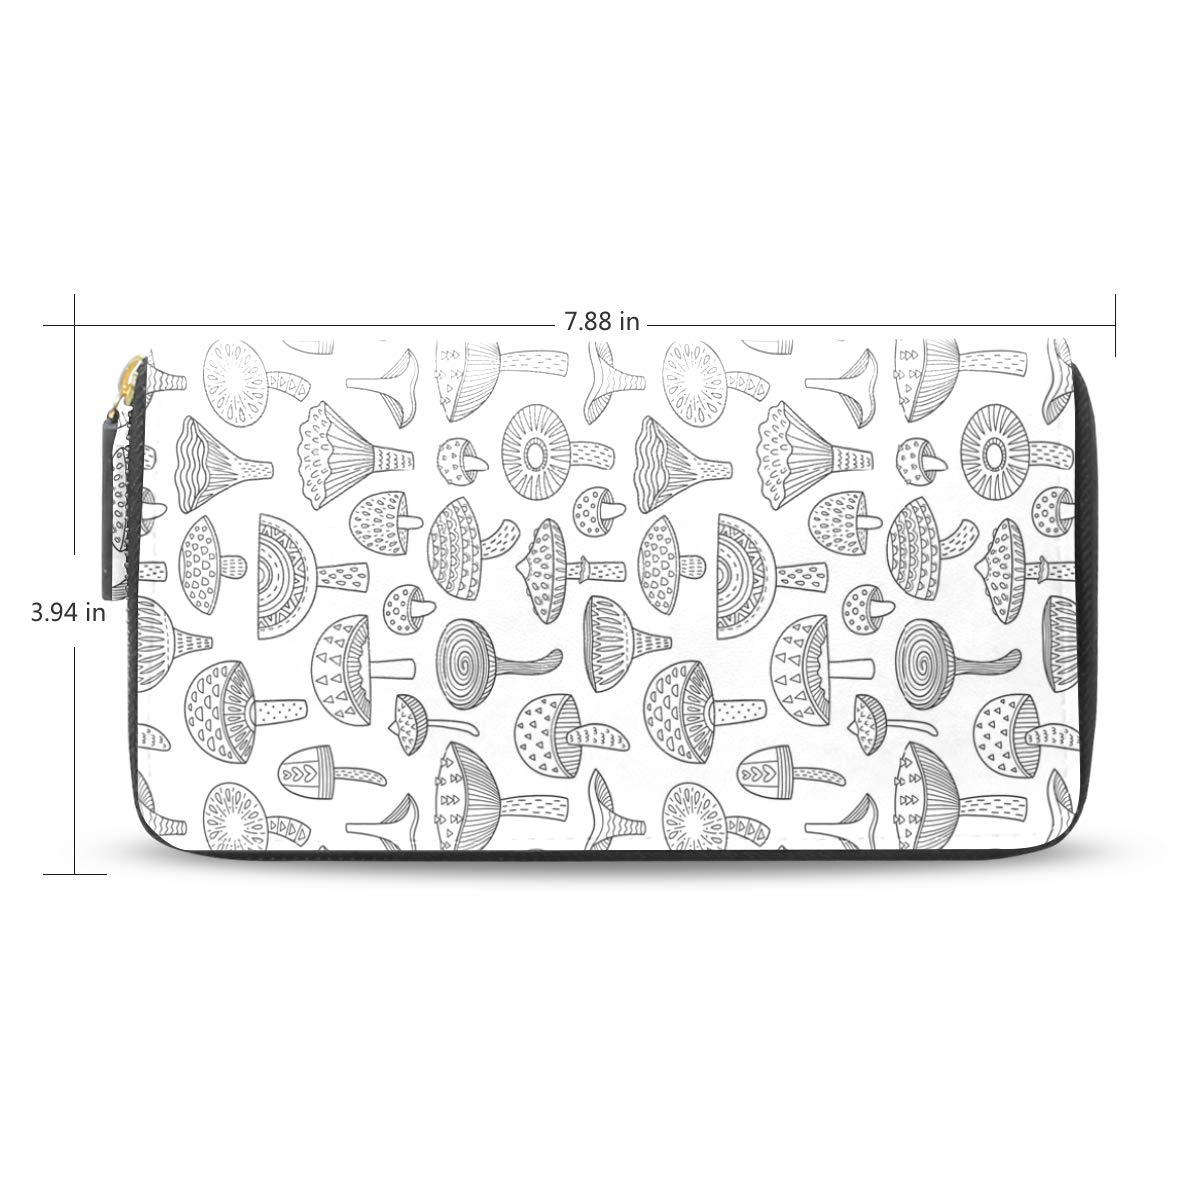 Women Mushrooms Ink Coloring Leather Wallet Large Capacity Zipper Travel Wristlet Bags Clutch Cellphone Bag